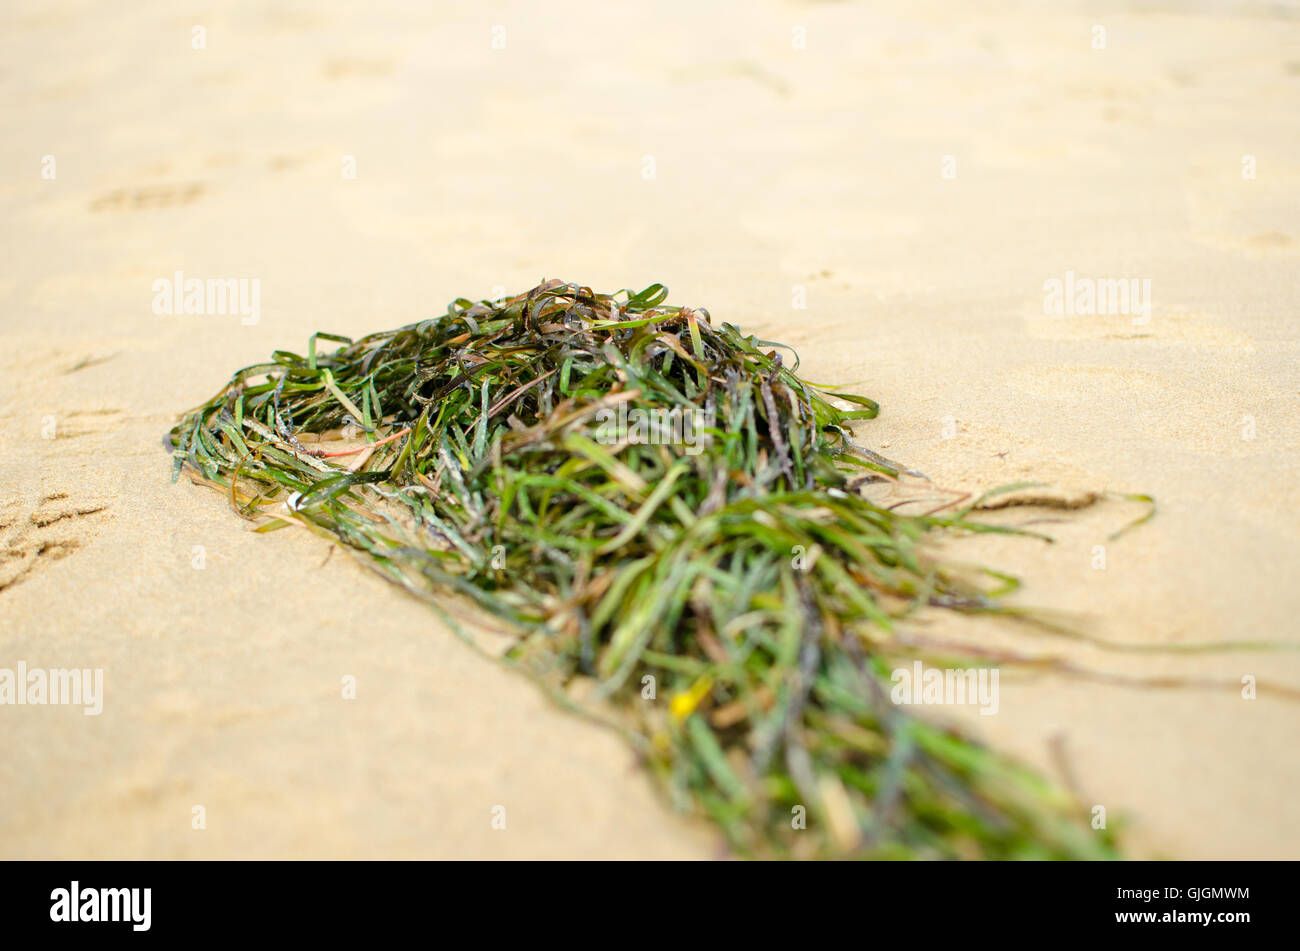 green algae on the beach closeup - Stock Image